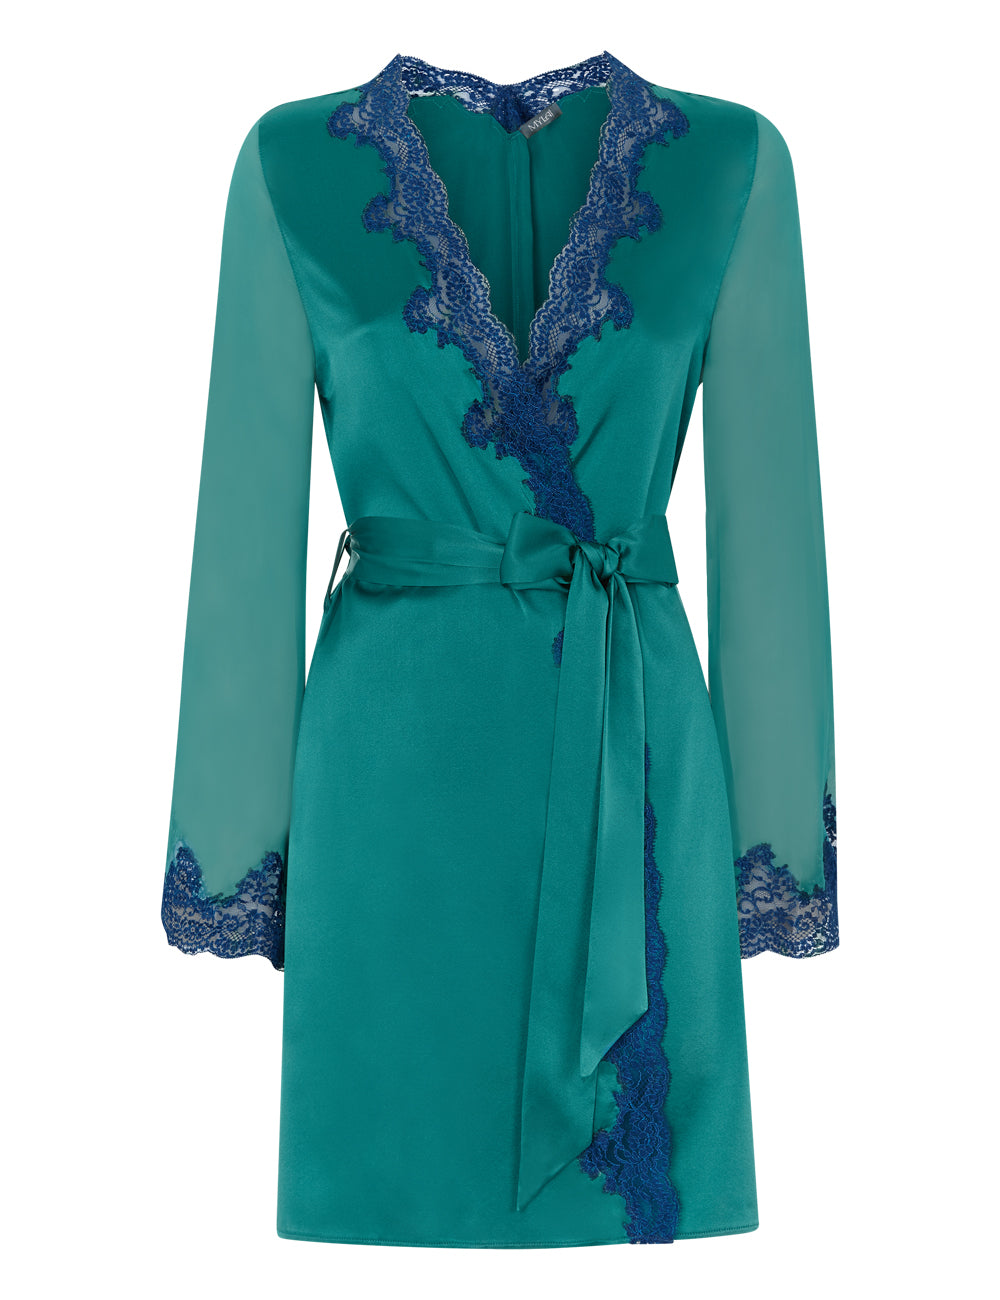 MYLA Heritage Silk Short Robe - Emerald/Ink Blue - XS - S - M - L - XL